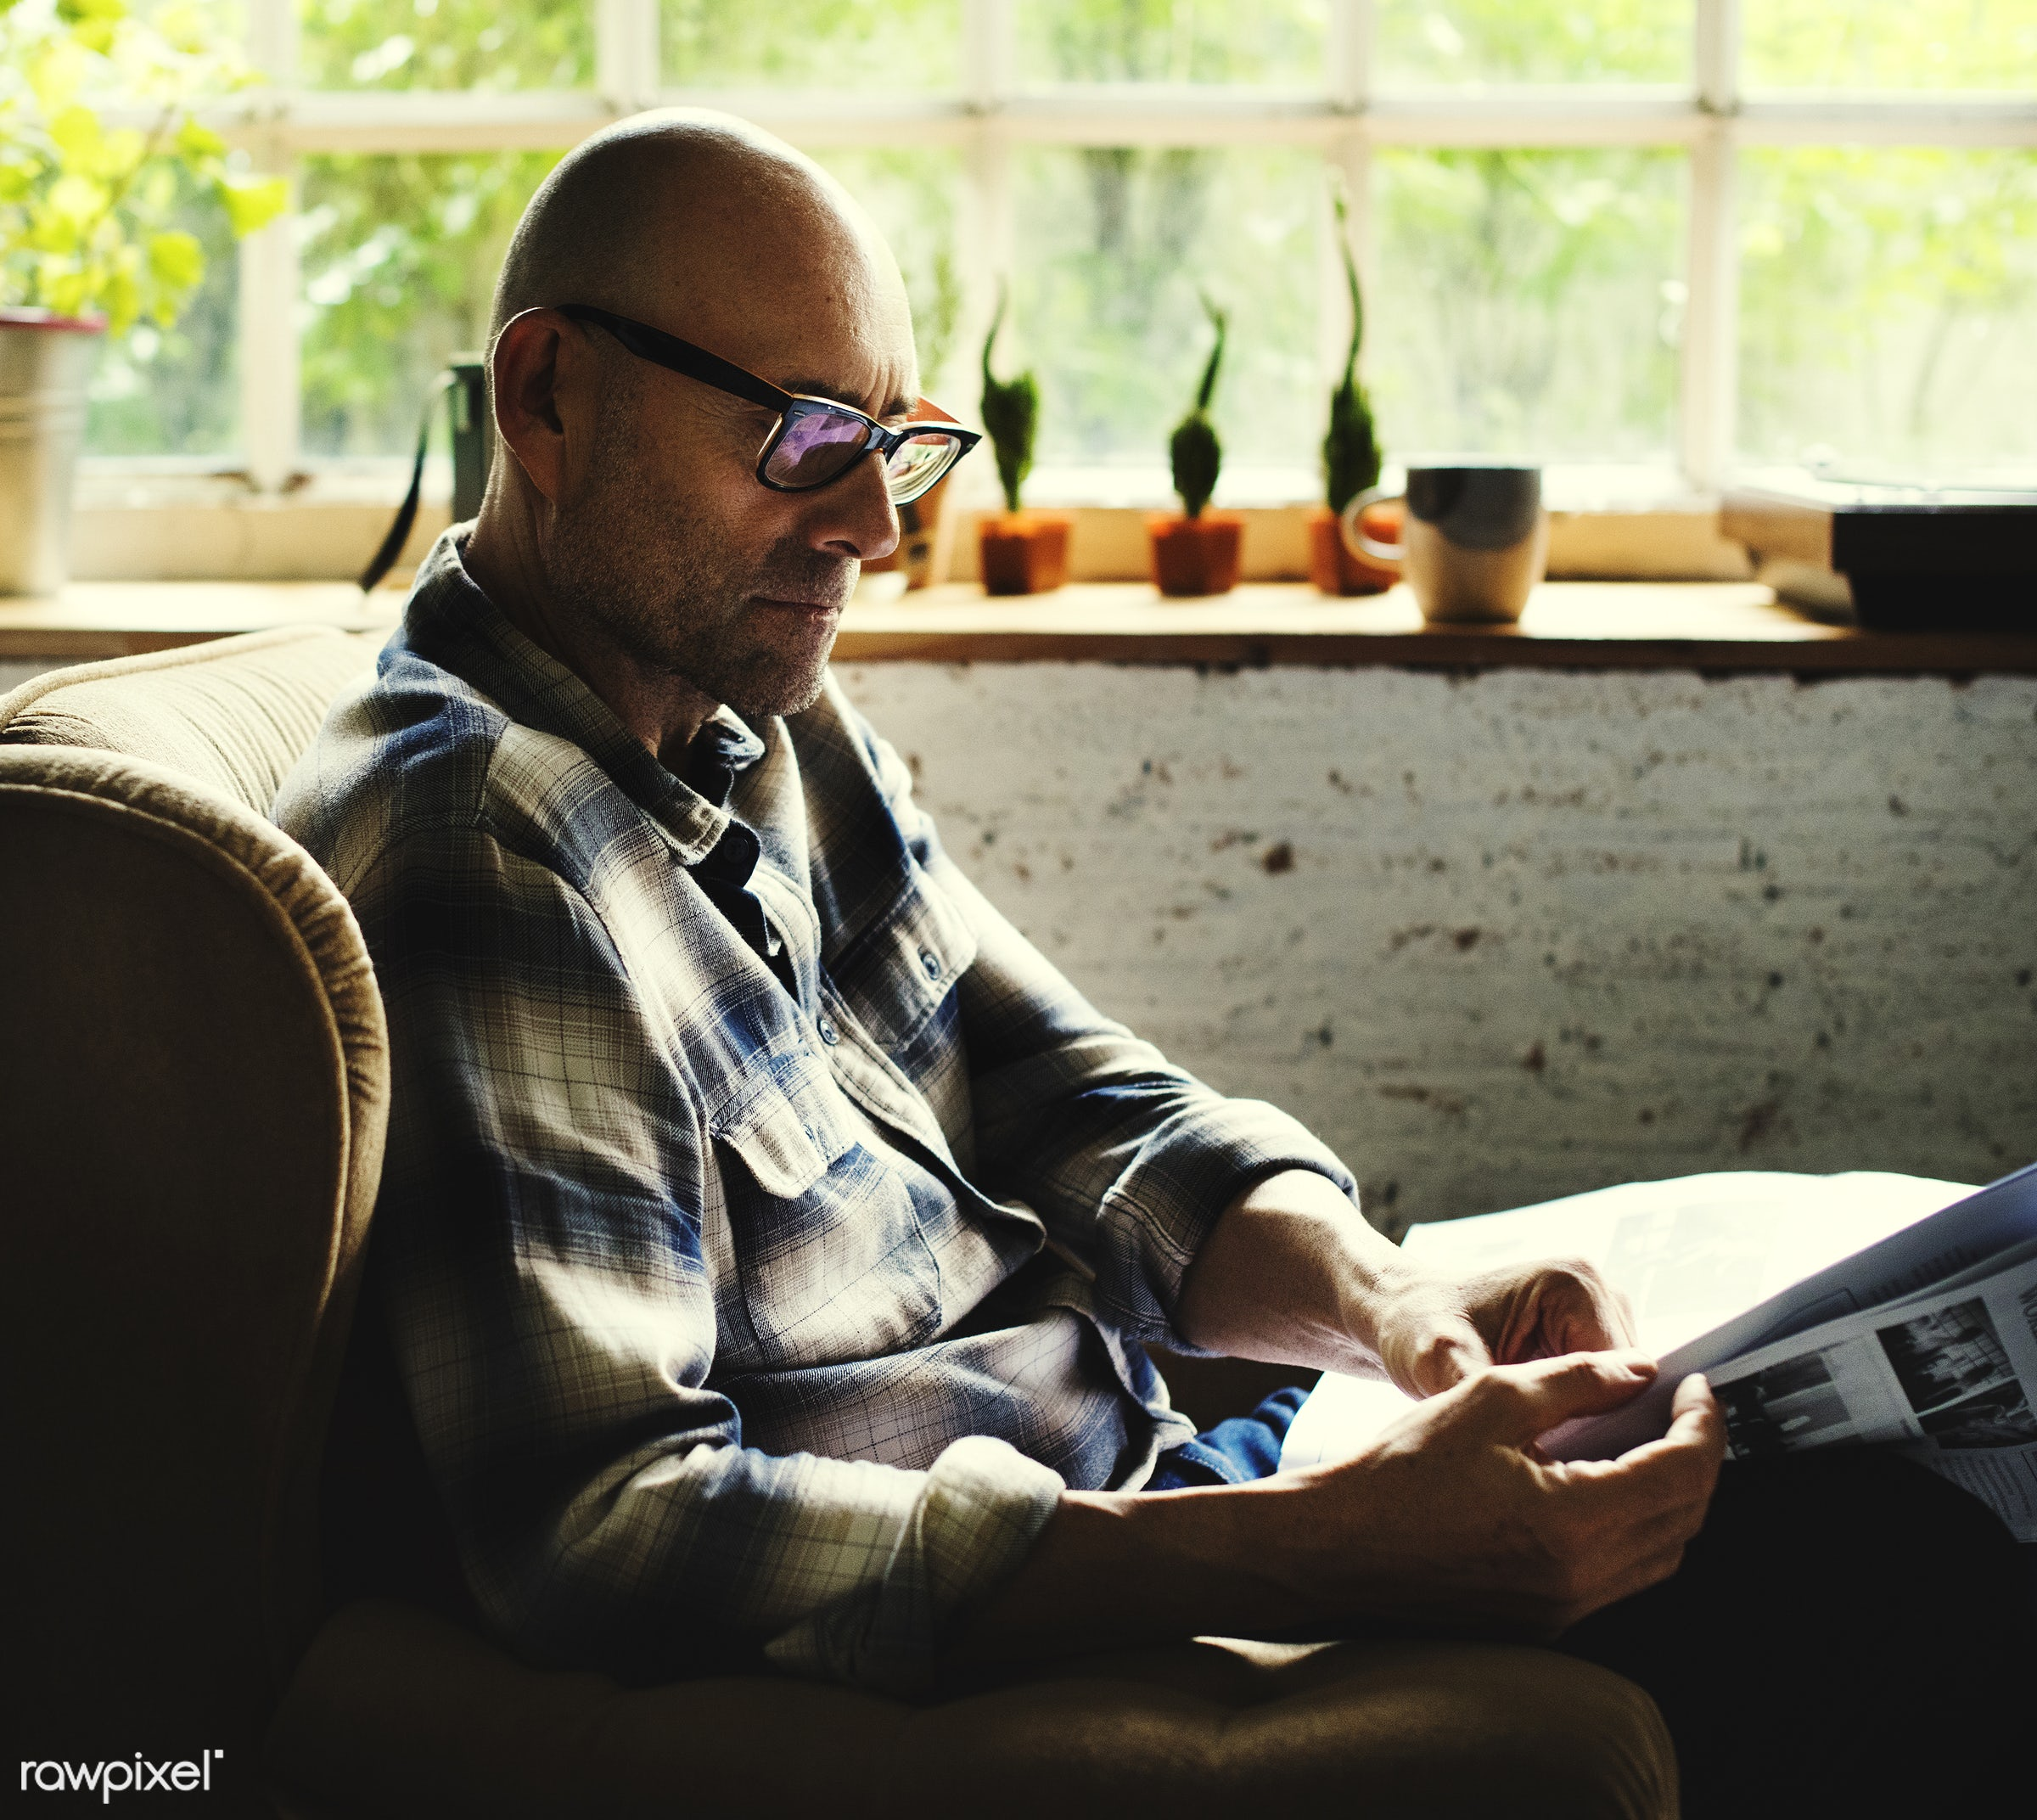 relax, paper, indoors, caucasian, sofa, read, eyeglasses, alone, man, hobby, leisure, couch, elderly, senior, newspaper